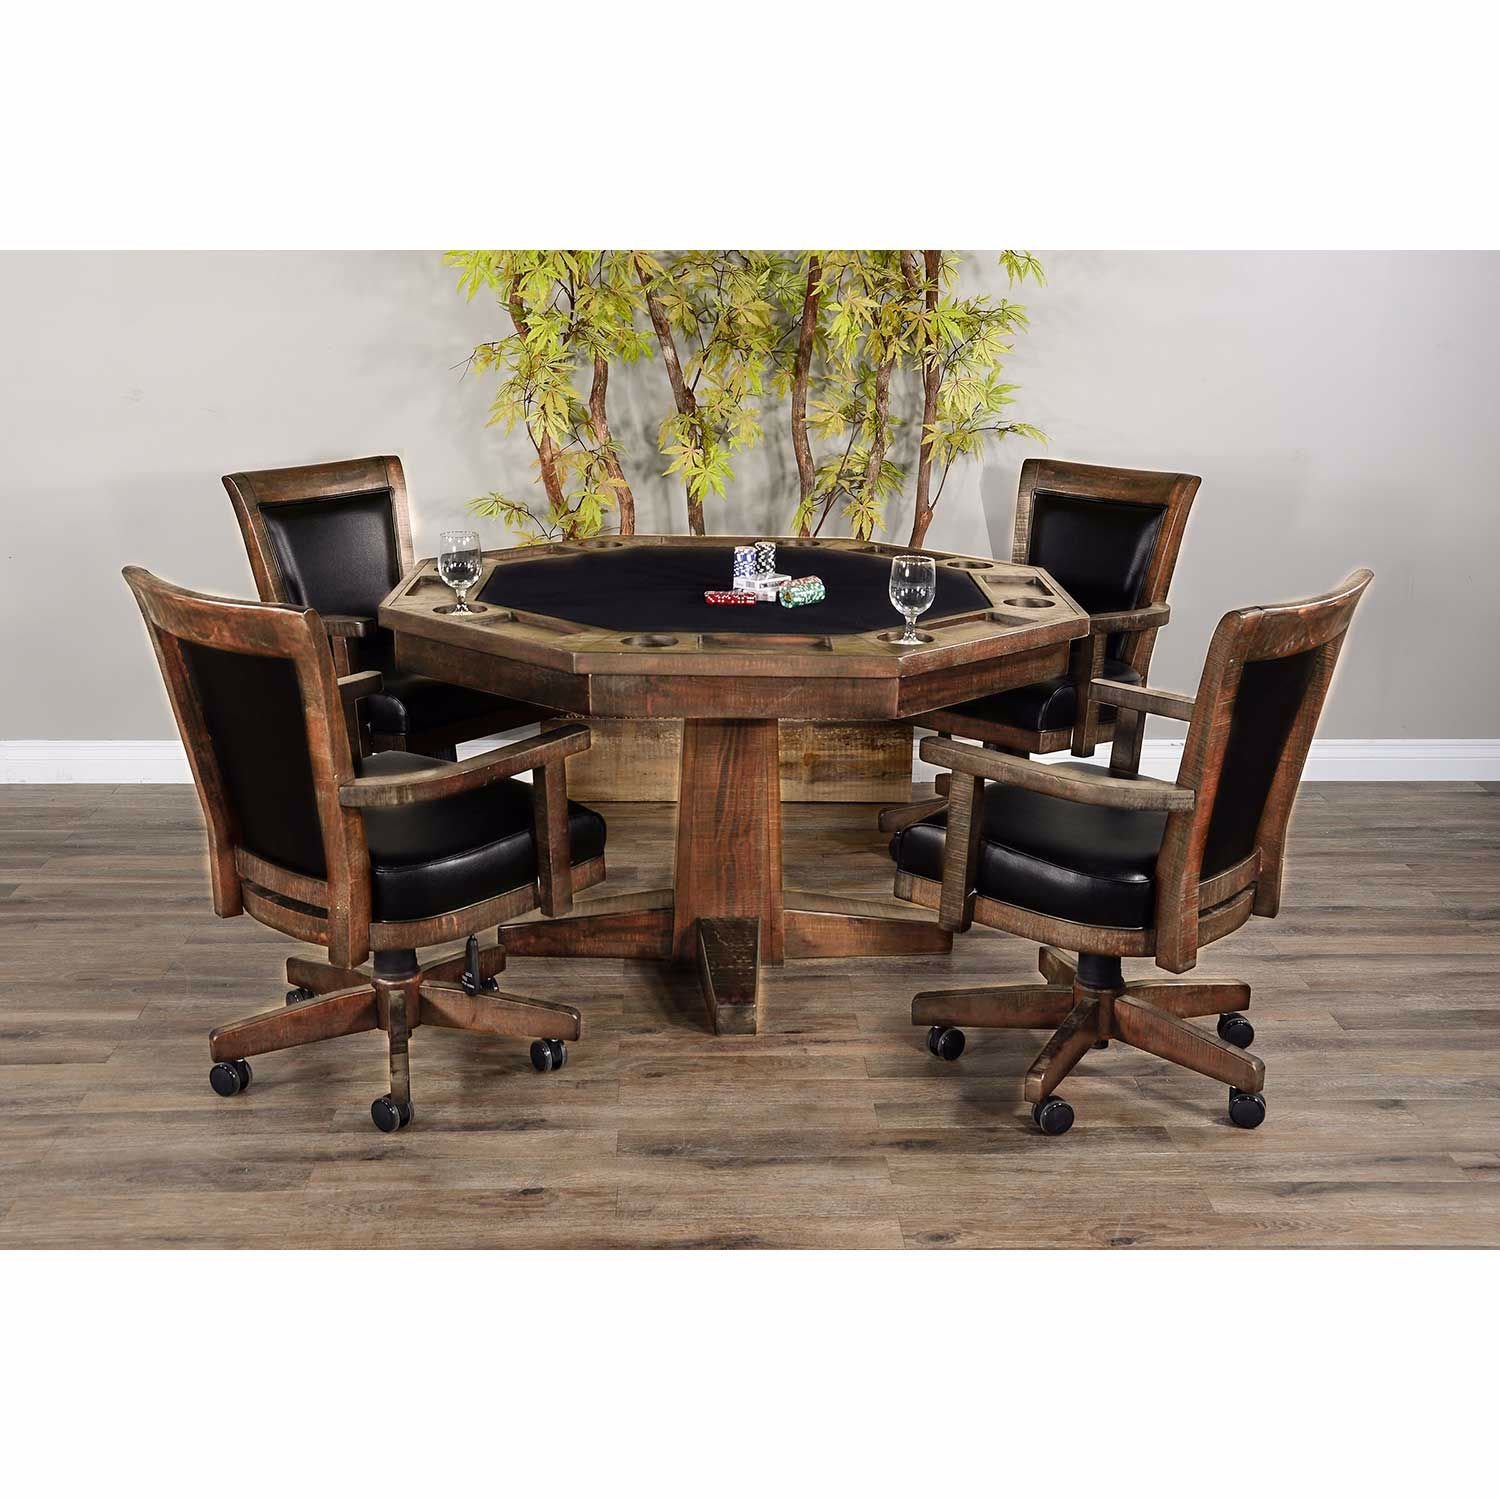 Picture of Tobacco Leaf Game Table